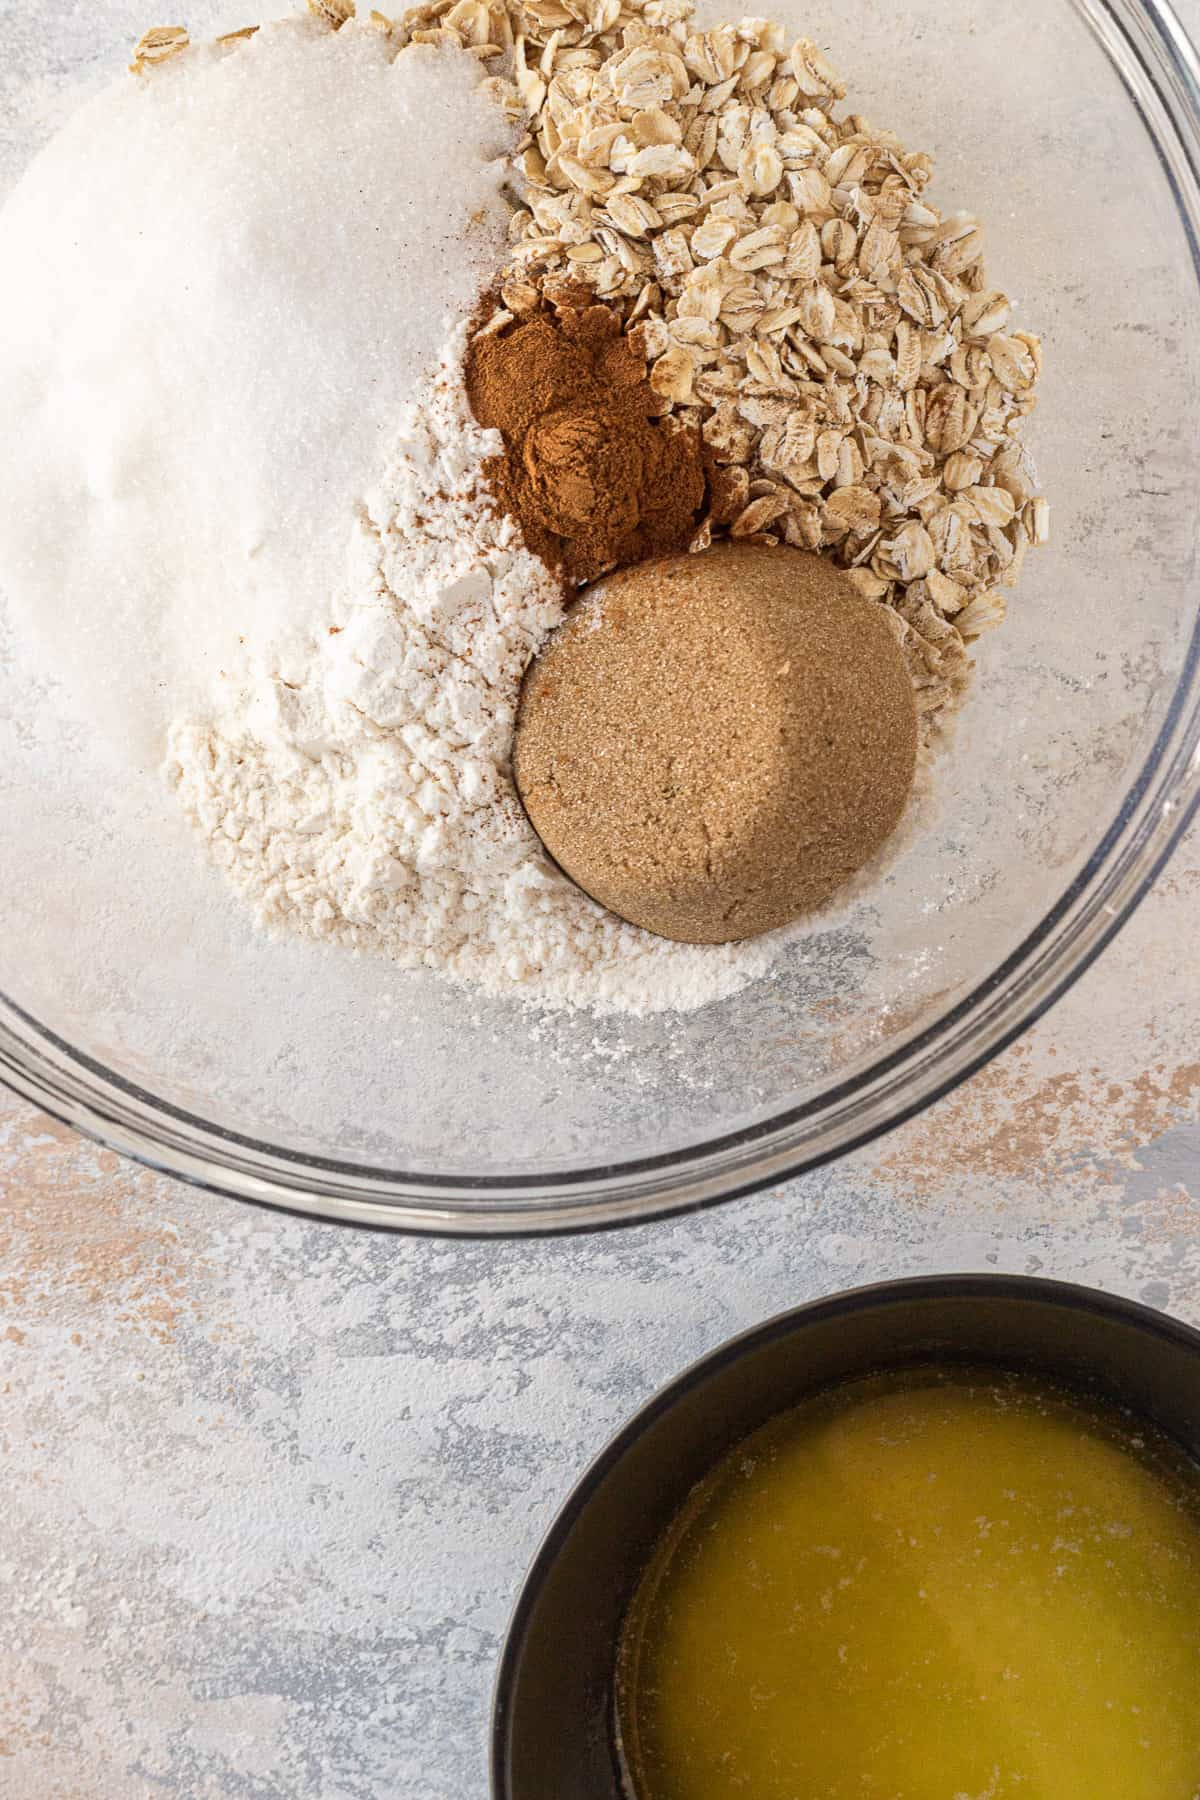 ingredients needed to make the oat streusel